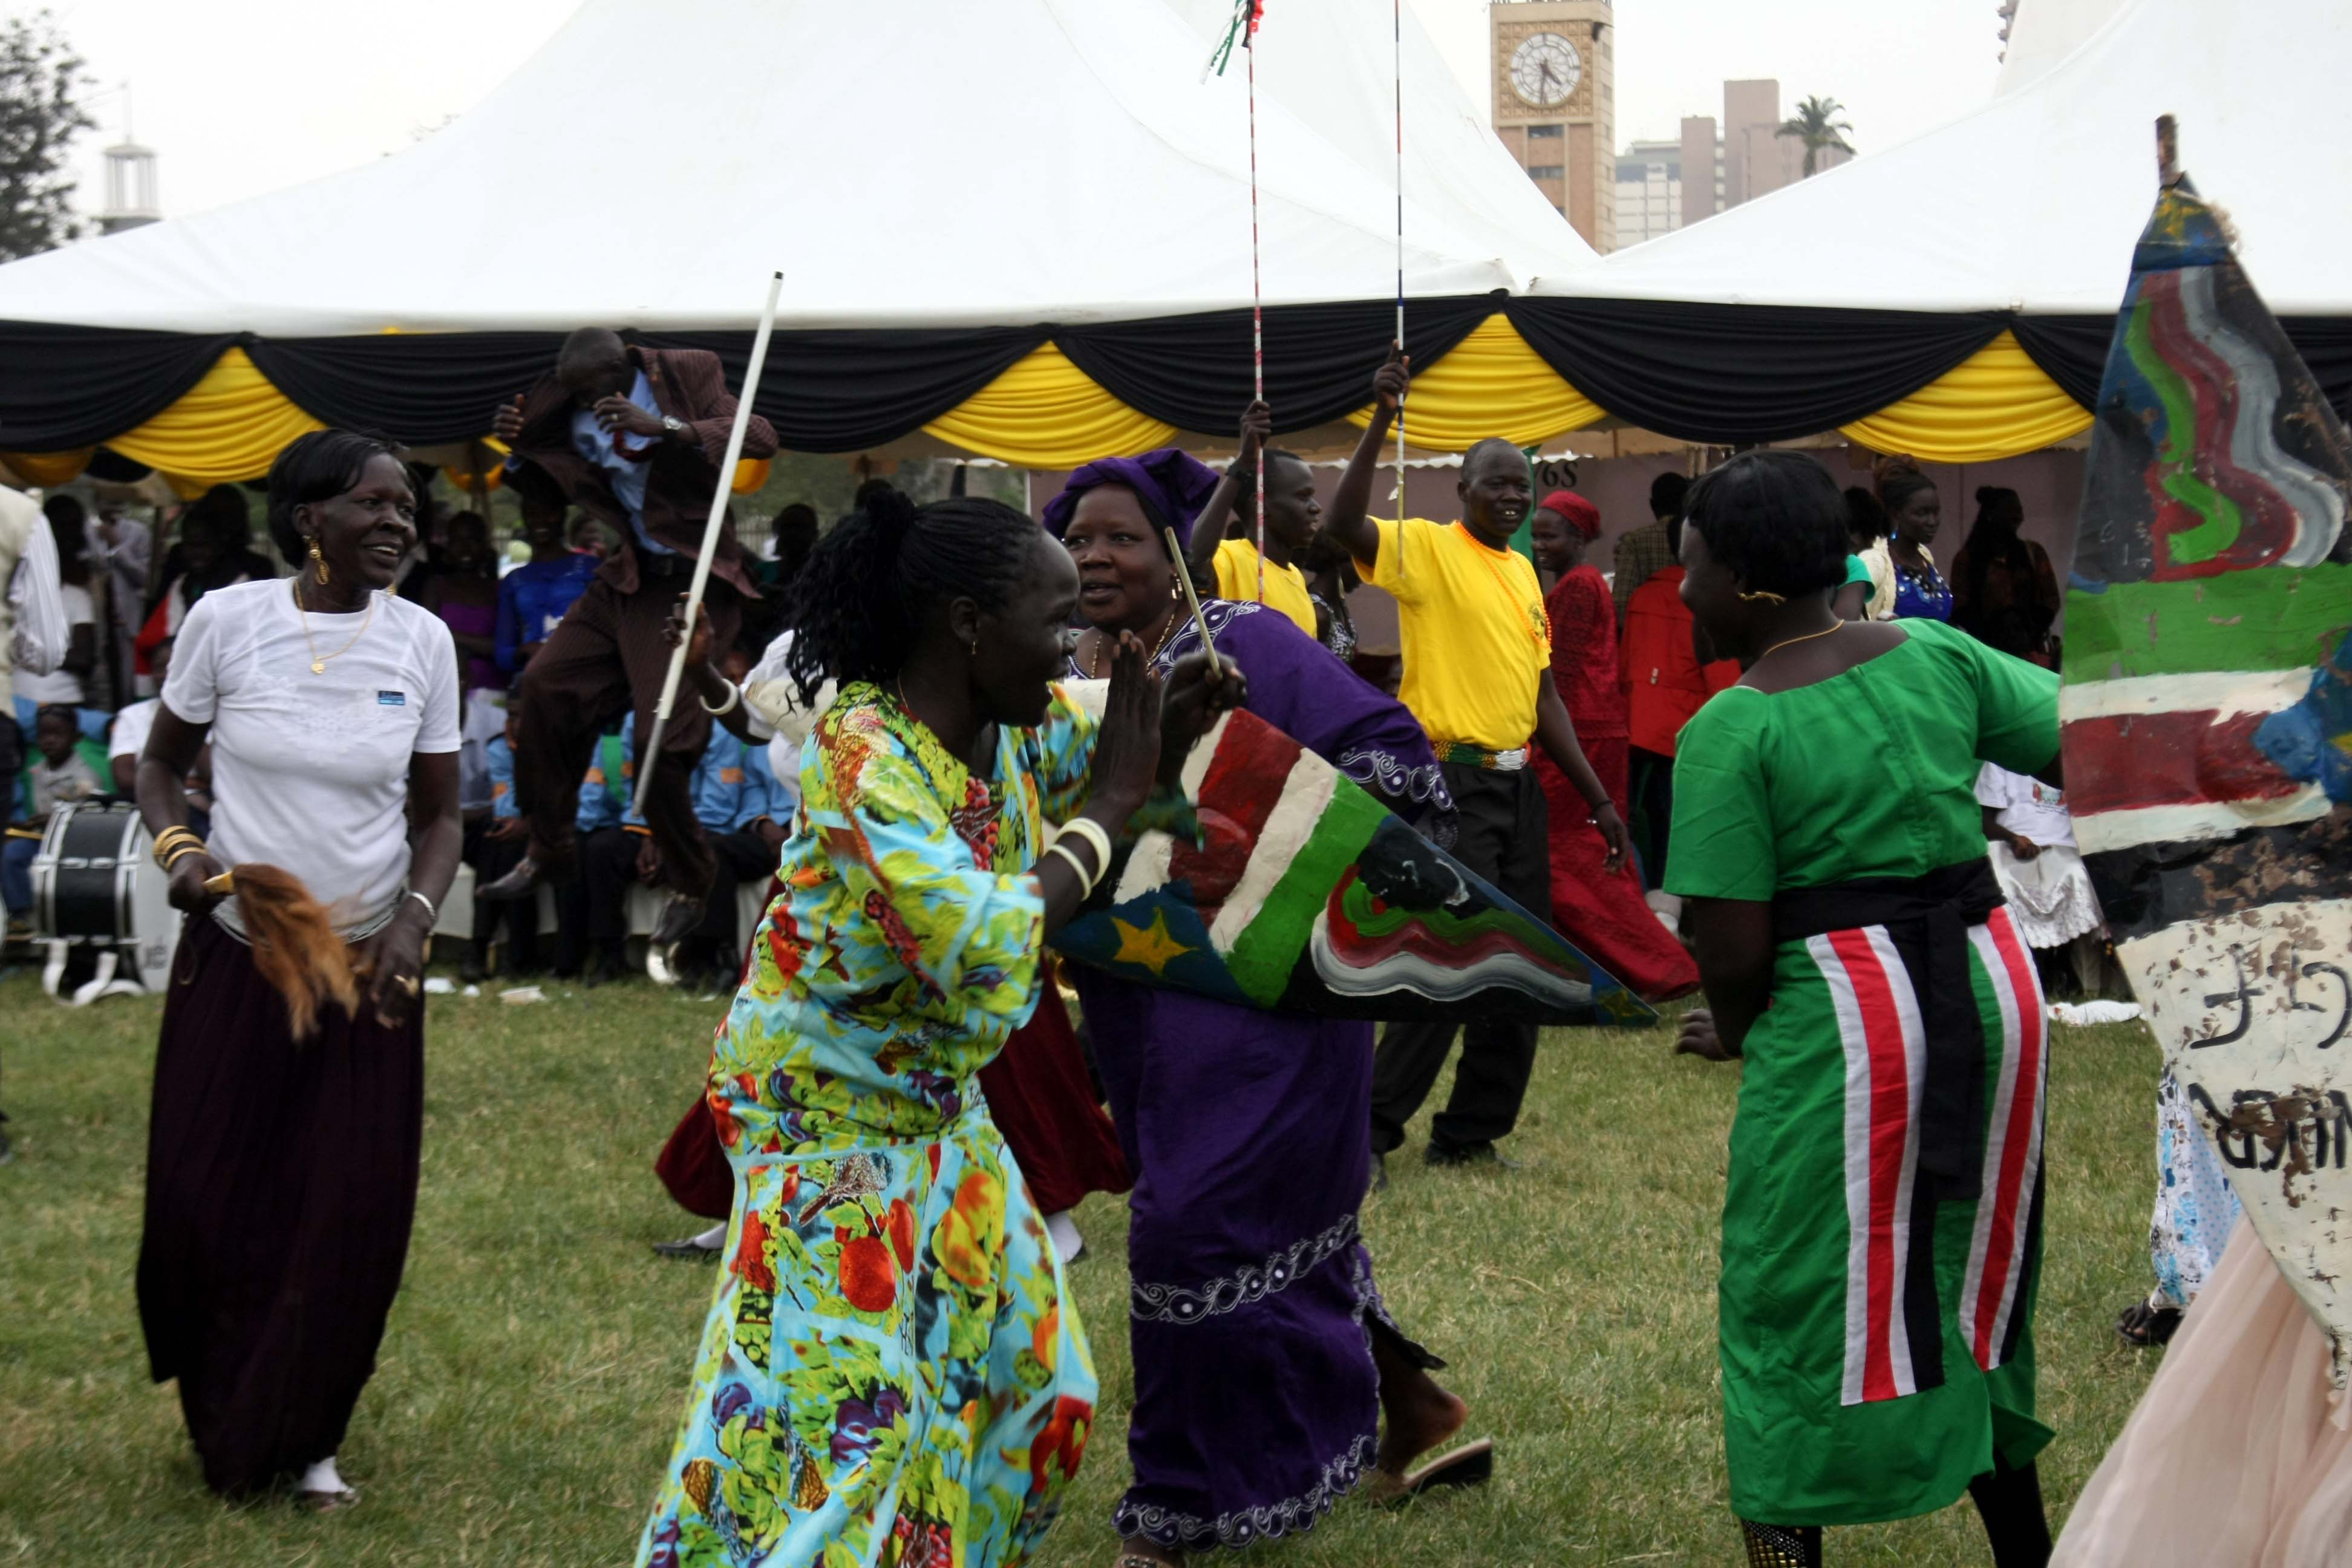 South Sudanese women dancing to celebrate their country's first independence anniversary on July 9, 2012. Copyright © Demotix.